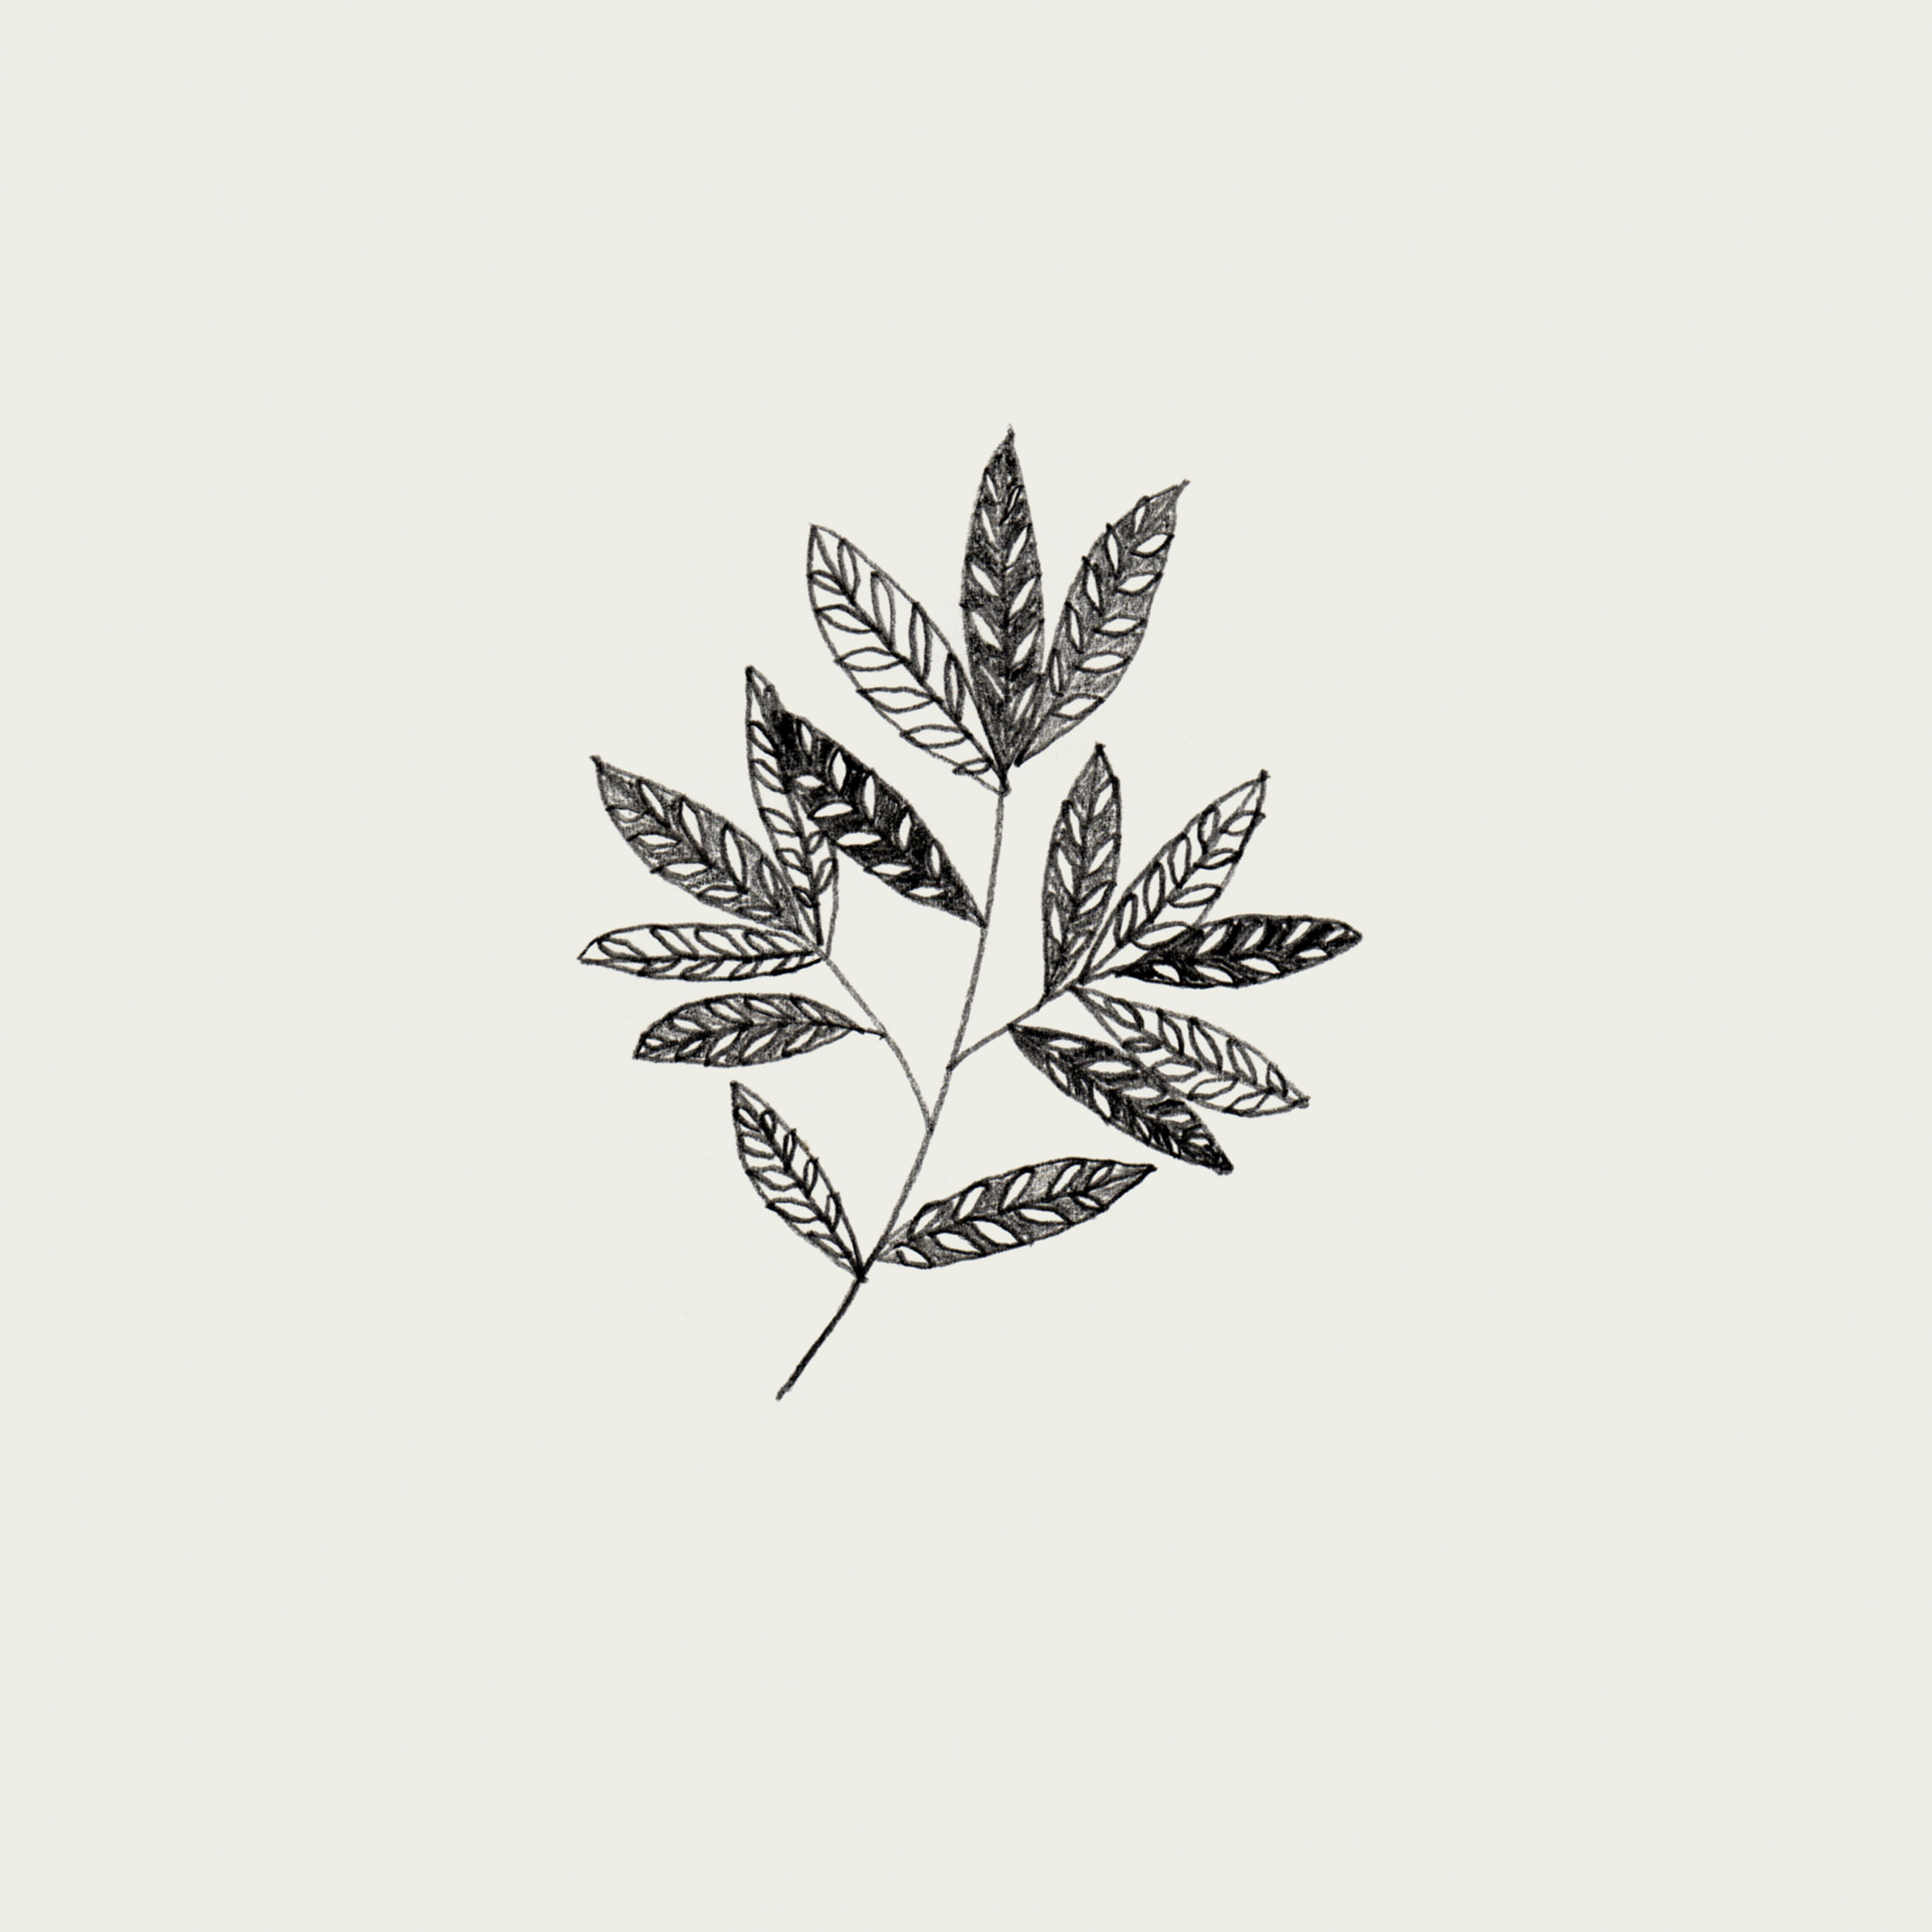 Black-white-flower-leaf-illustration-5.jpg